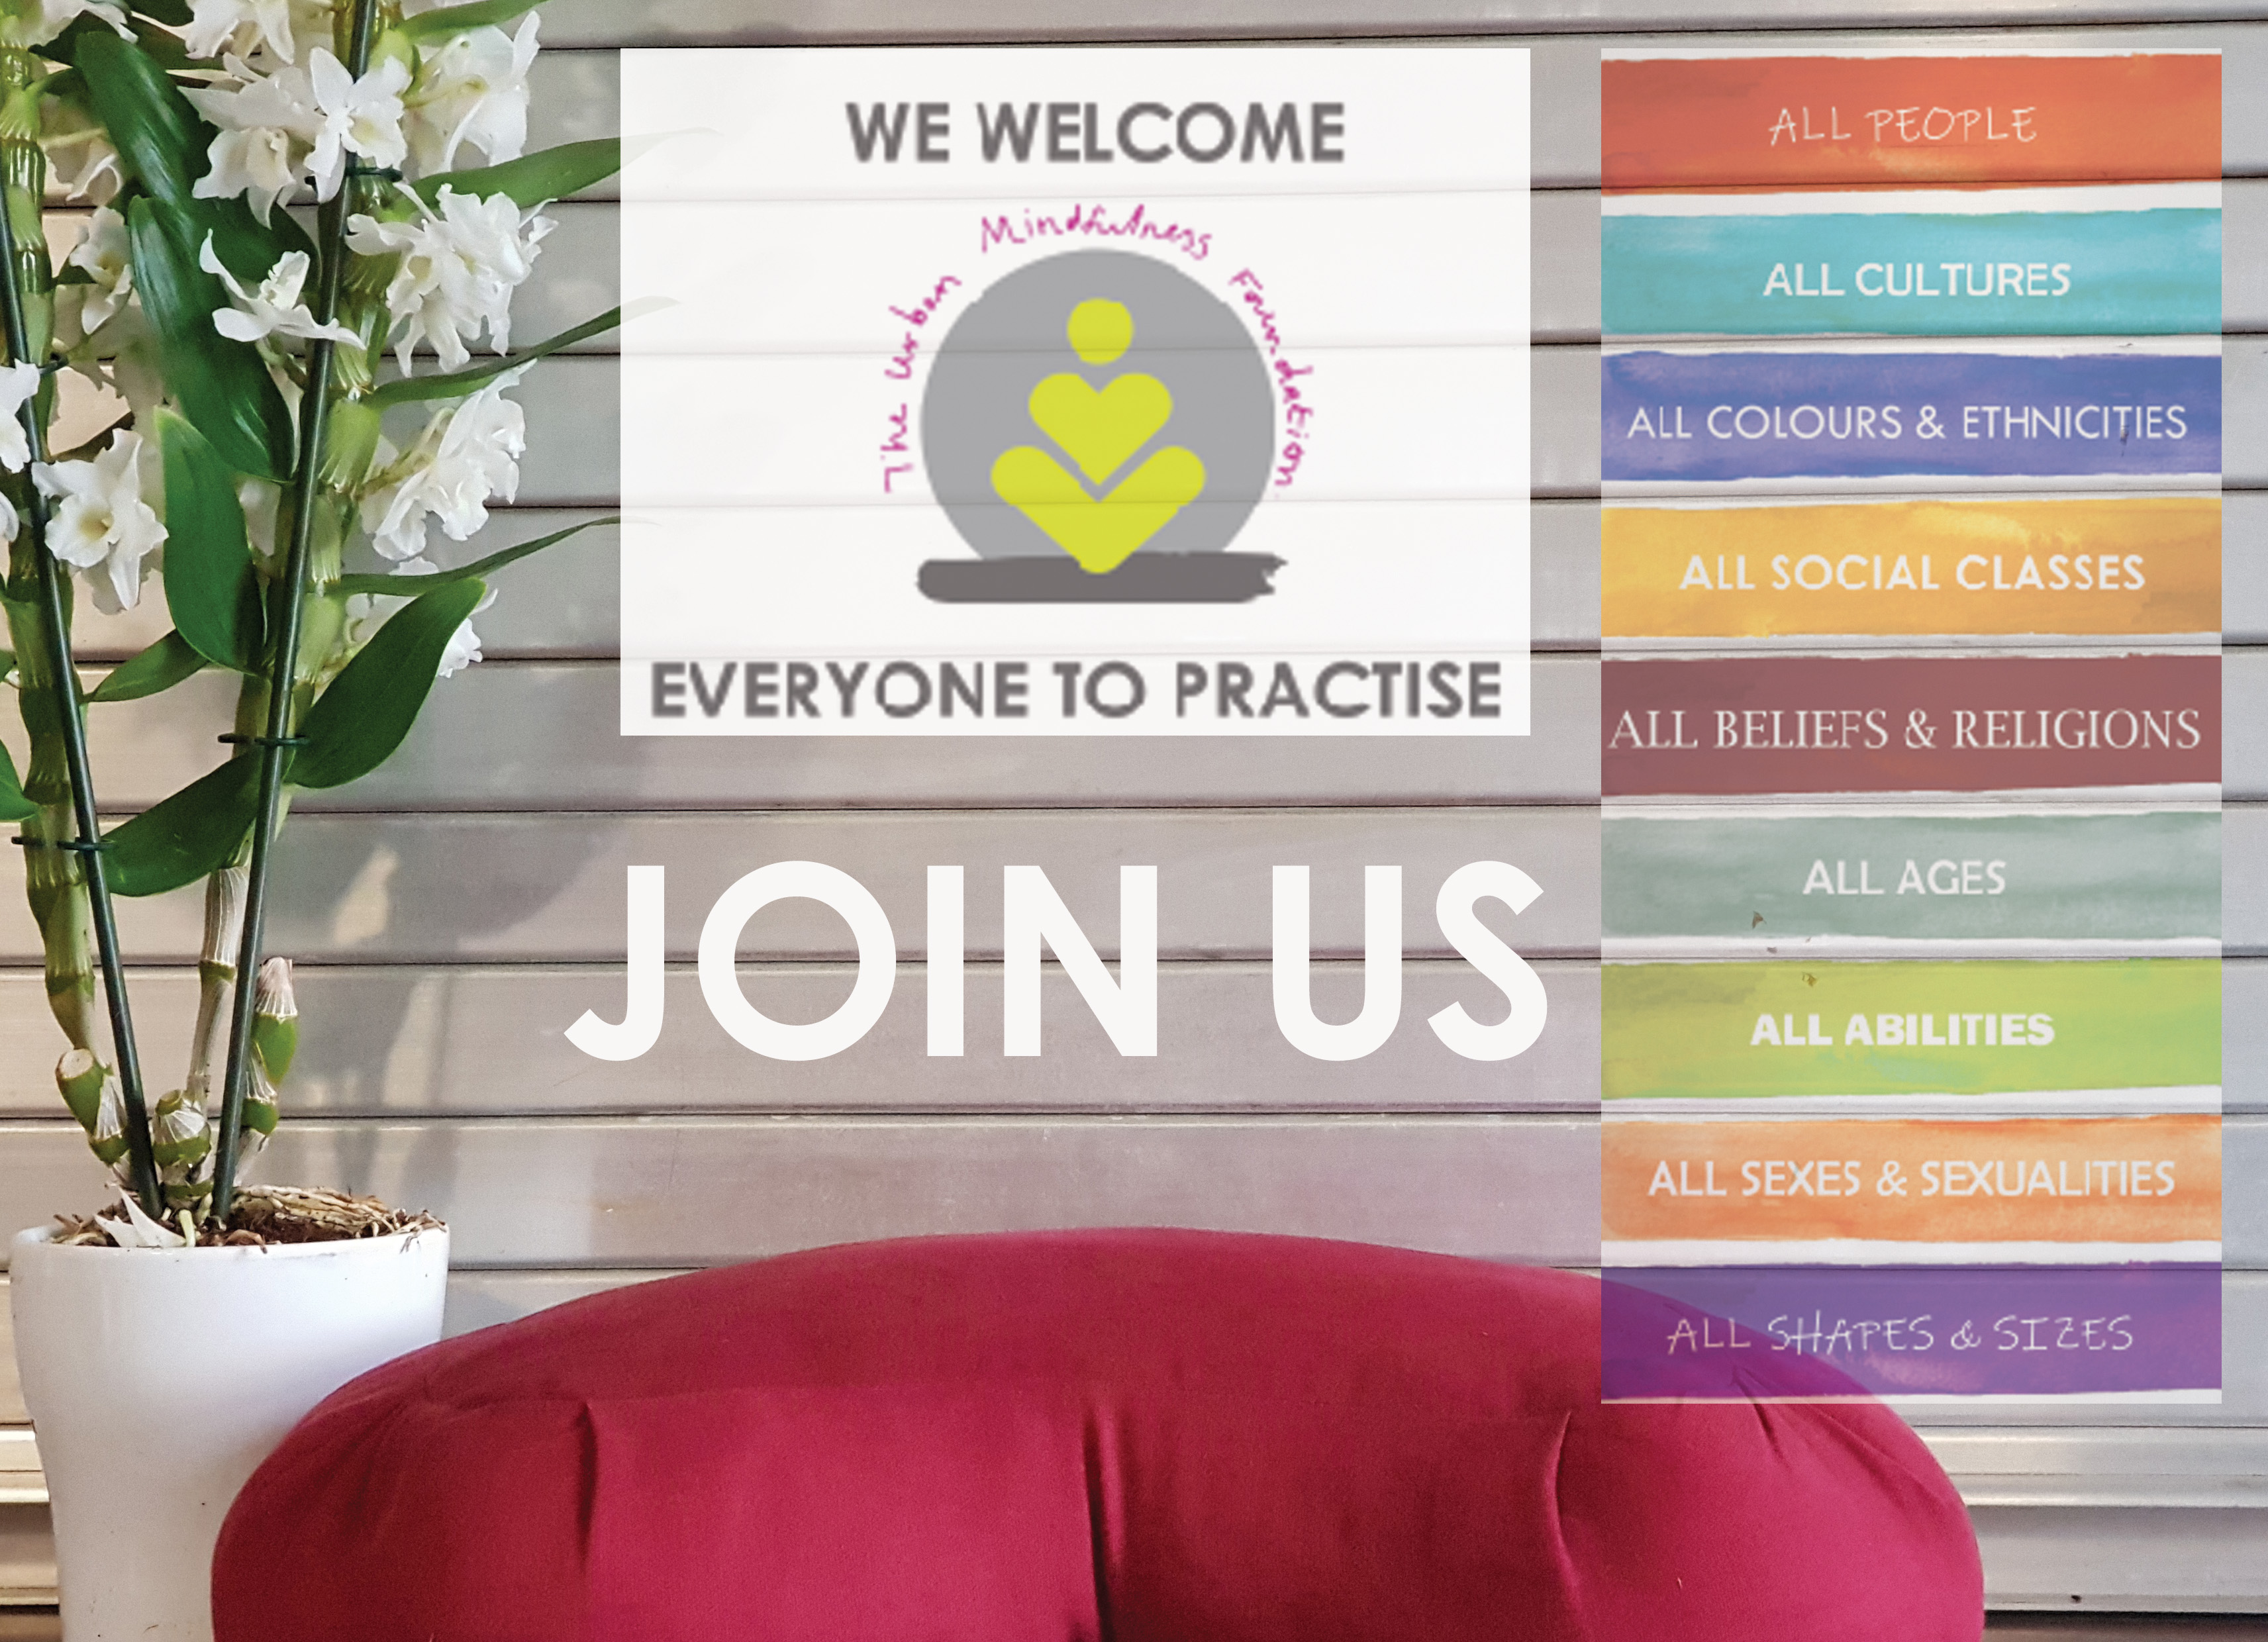 Mindfulness Training for all people Social Mindfulness Group covering life topics such as racial justice, equality, diversity and inclusion. Multicultural Mindfulness Specialist